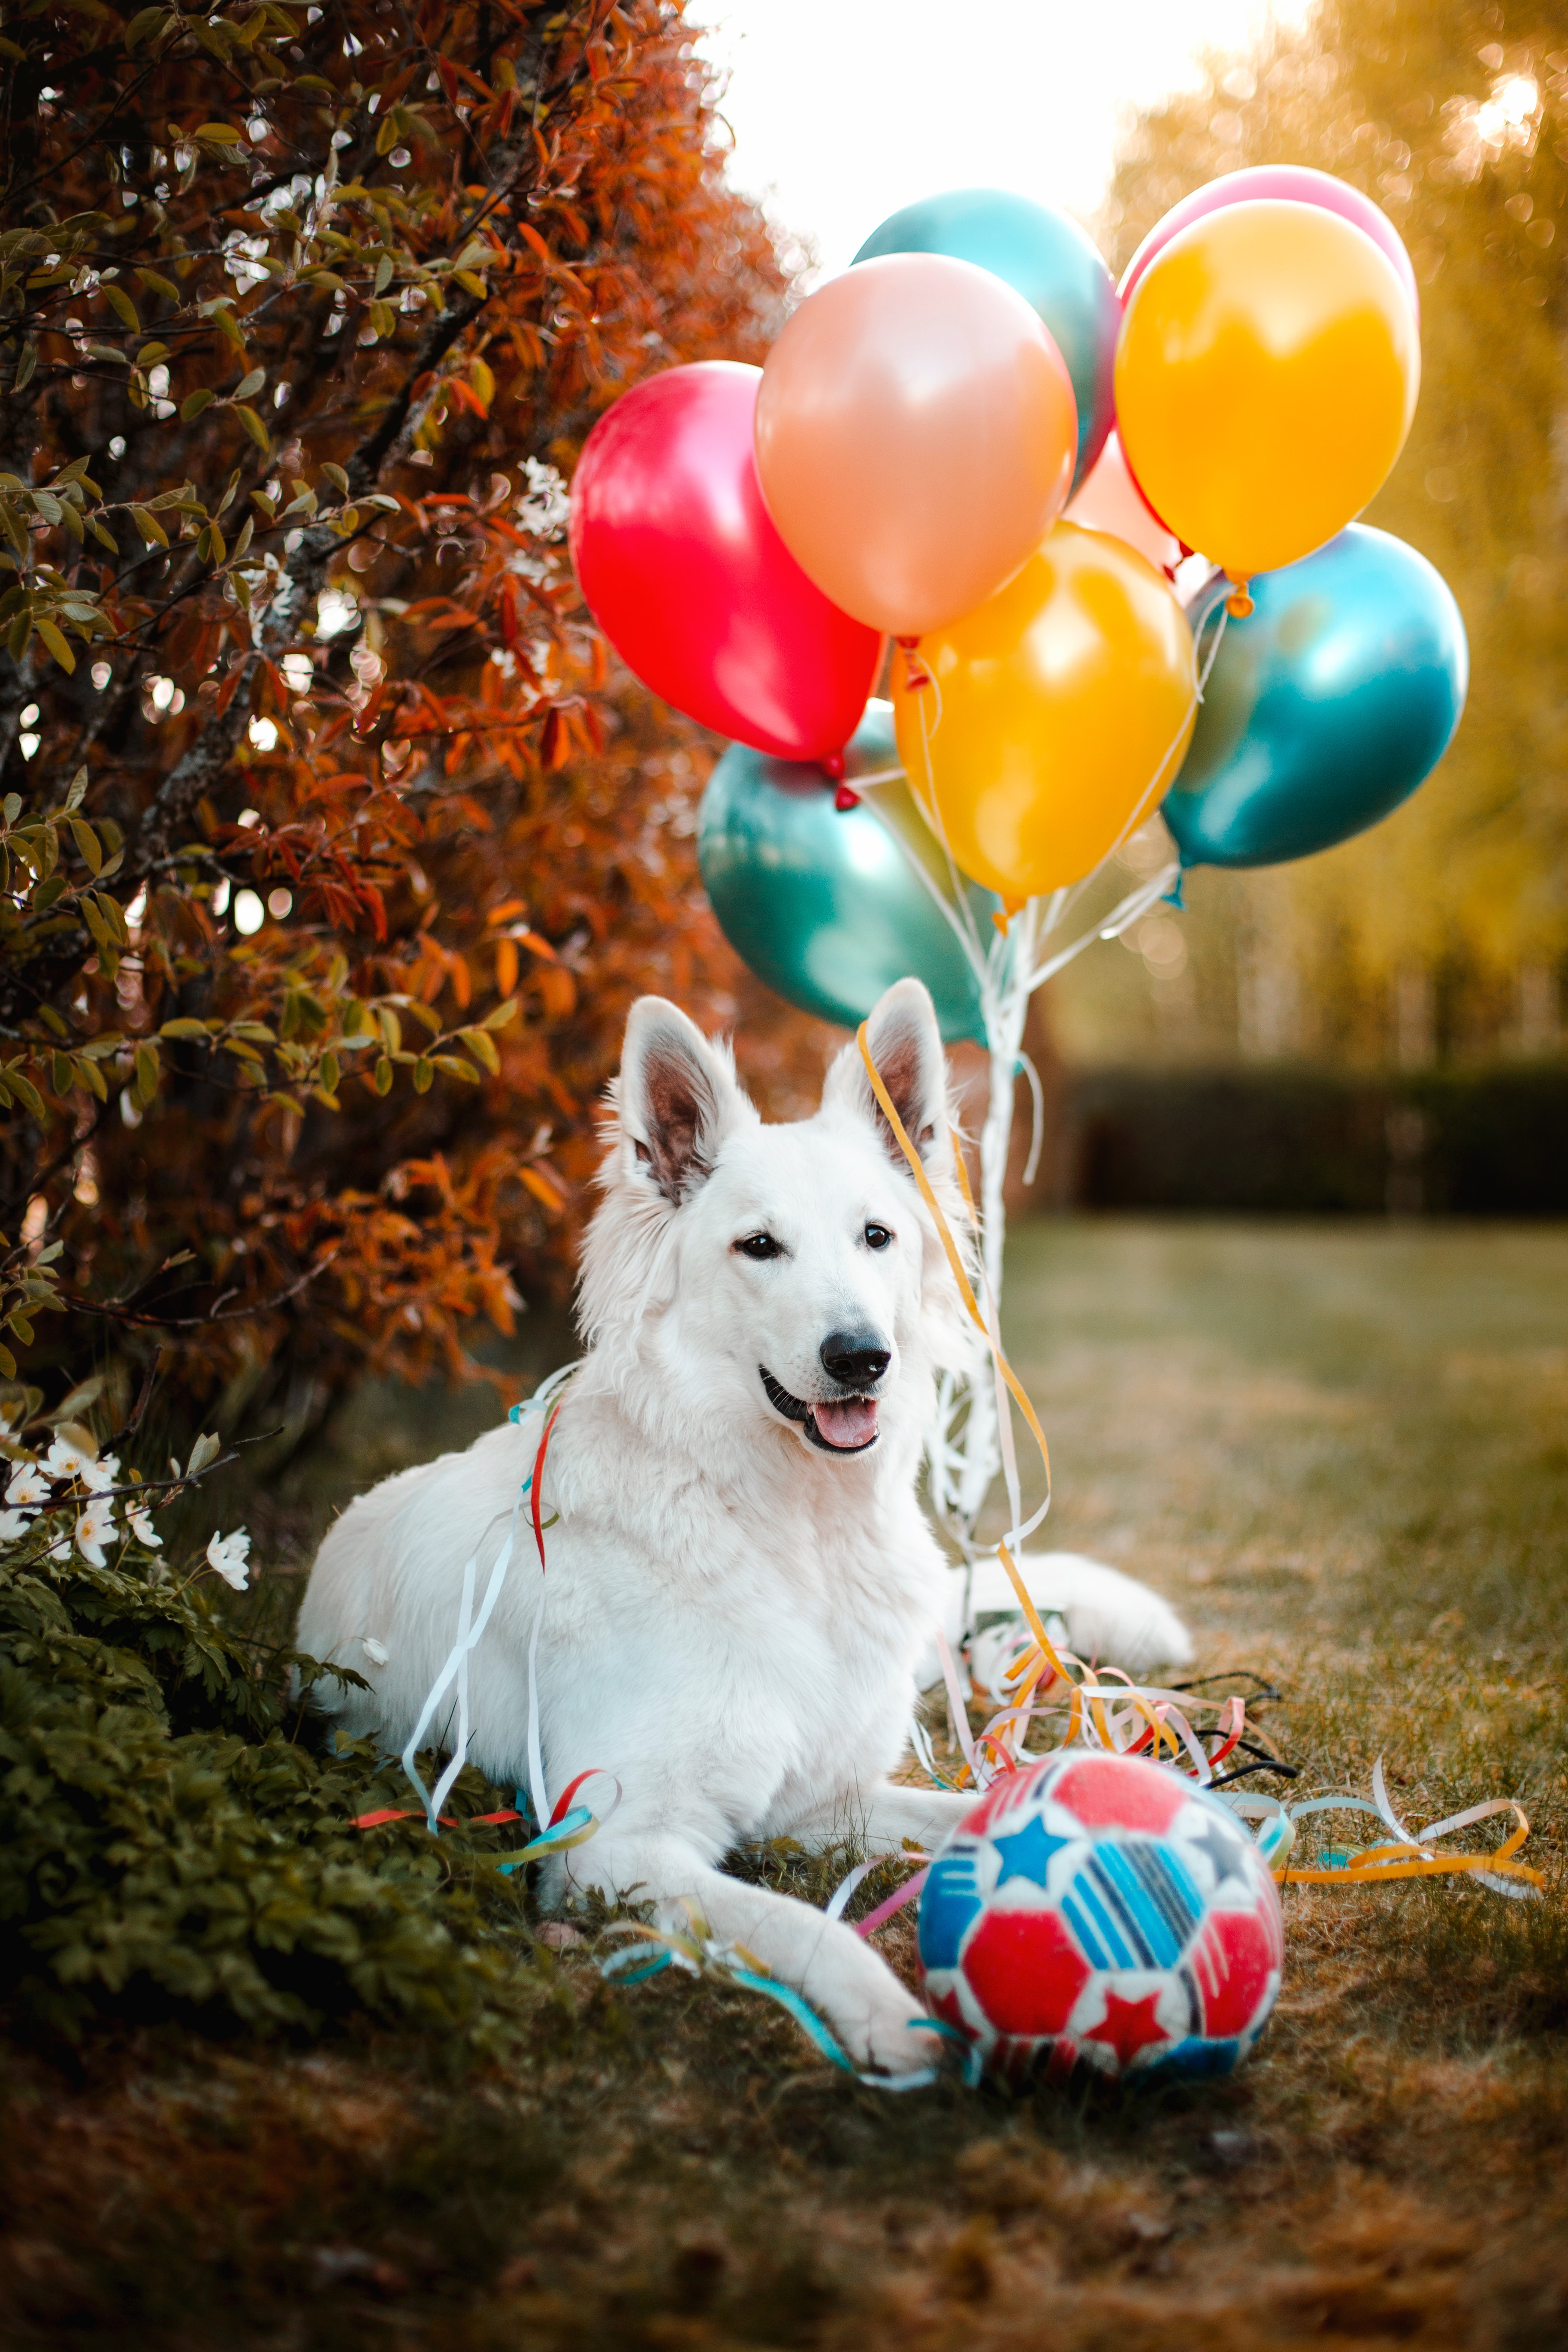 143097 Screensavers and Wallpapers Balloons for phone. Download Animals, Balloons, Dog, Pet, Ball, Animal, Air Balloons pictures for free